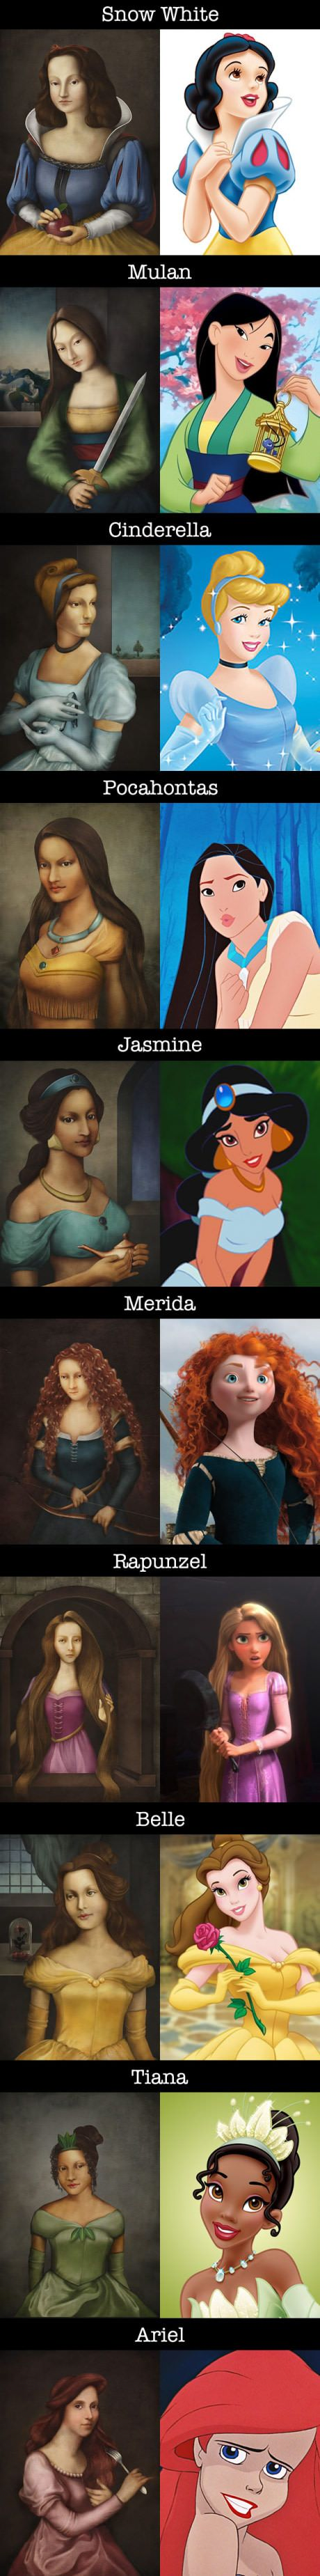 If Disney Princesses were drawn in Renaissance painting style